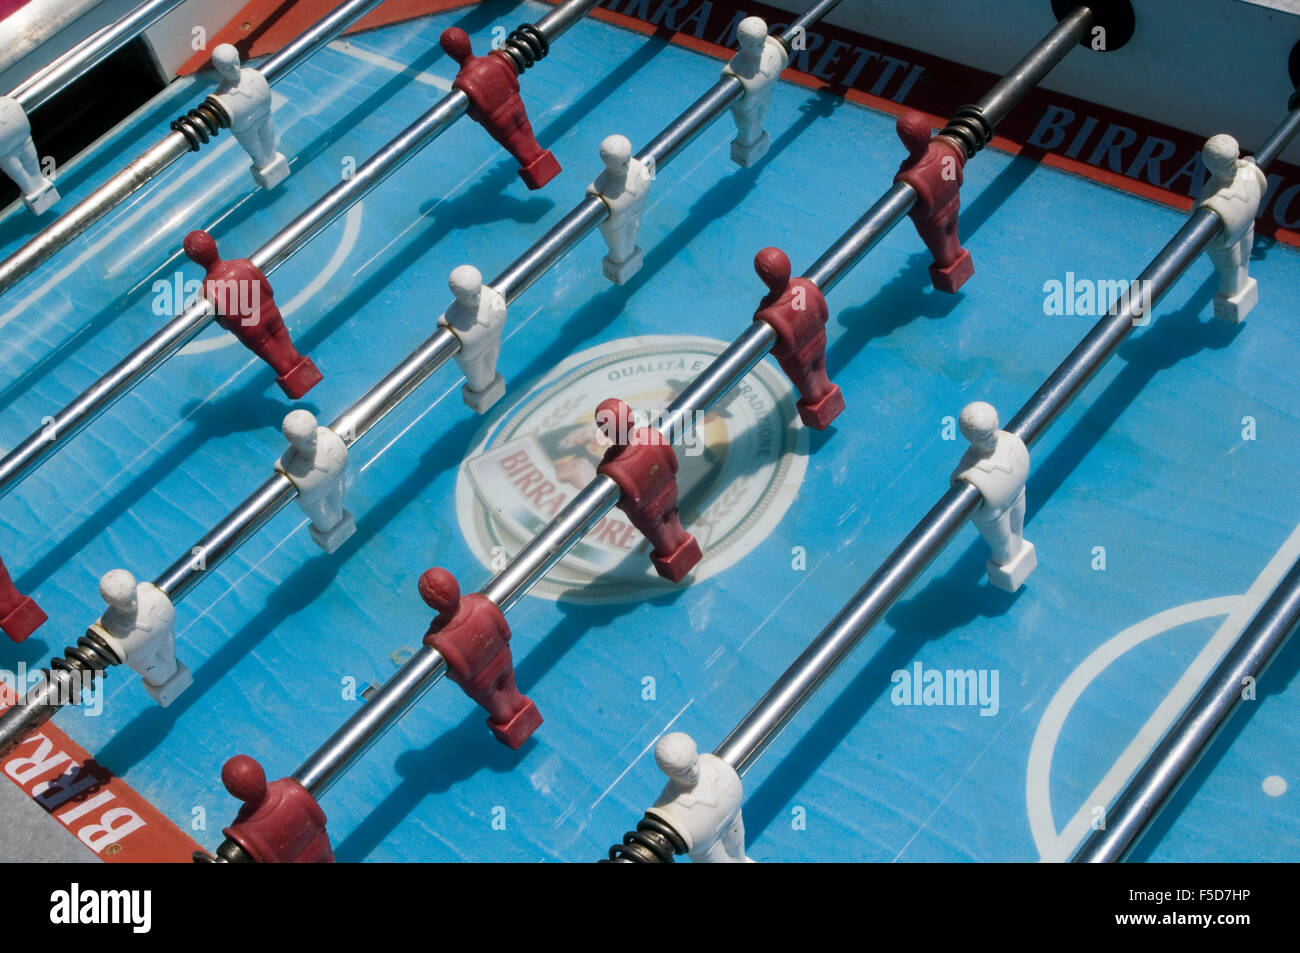 table football foosball ball tables Tischfußball play playing players bar game games foot foos balls - Stock Image